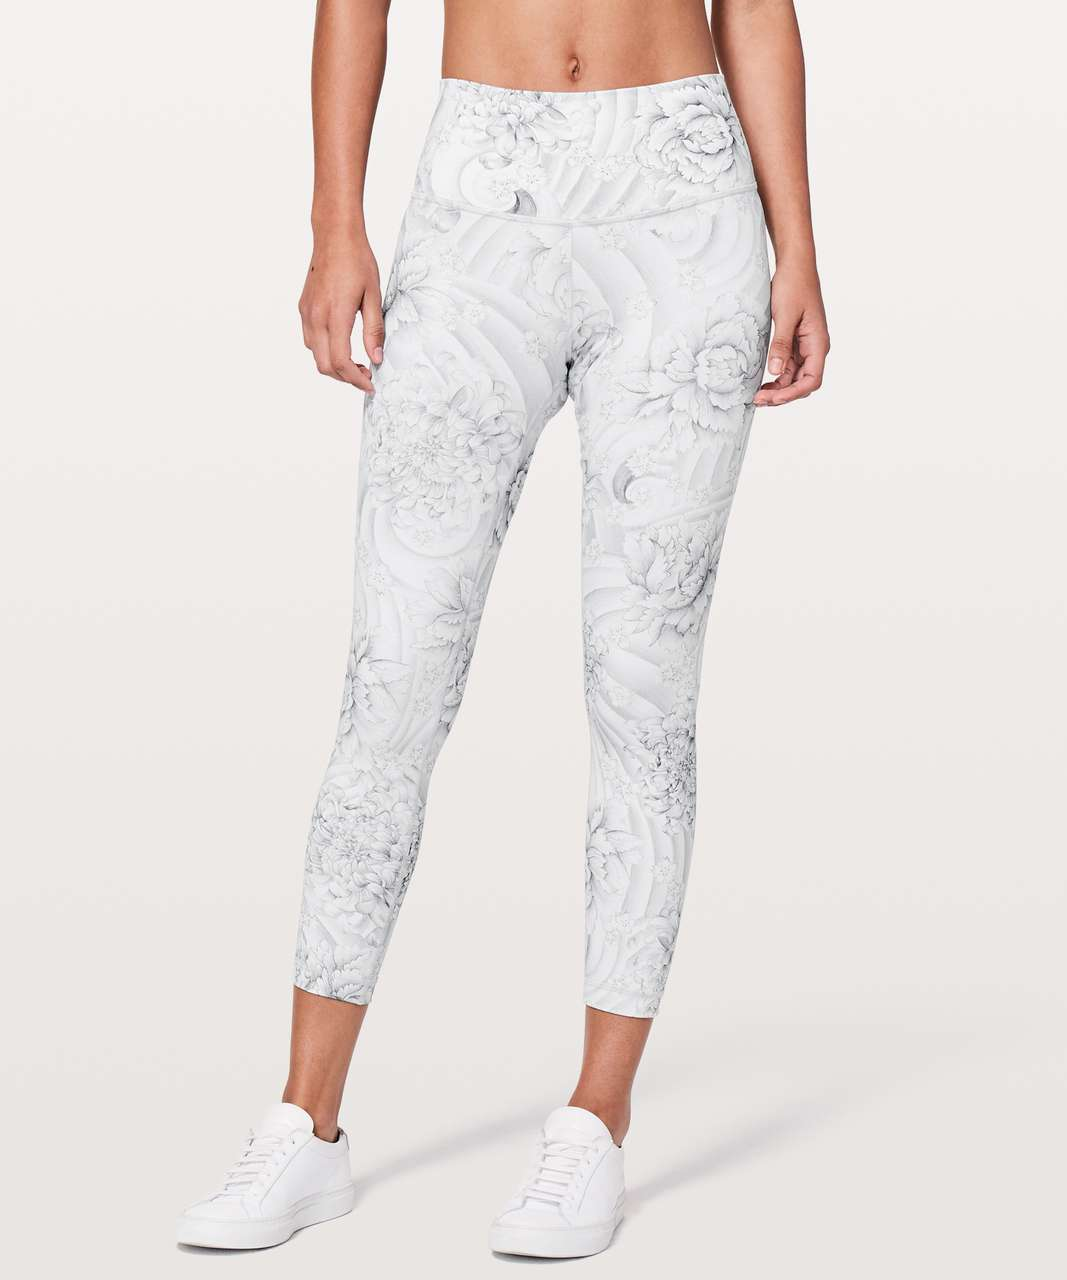 "Lululemon Wunder Under Hi-Rise 7/8 Tight *25"" - Twine White Multi"